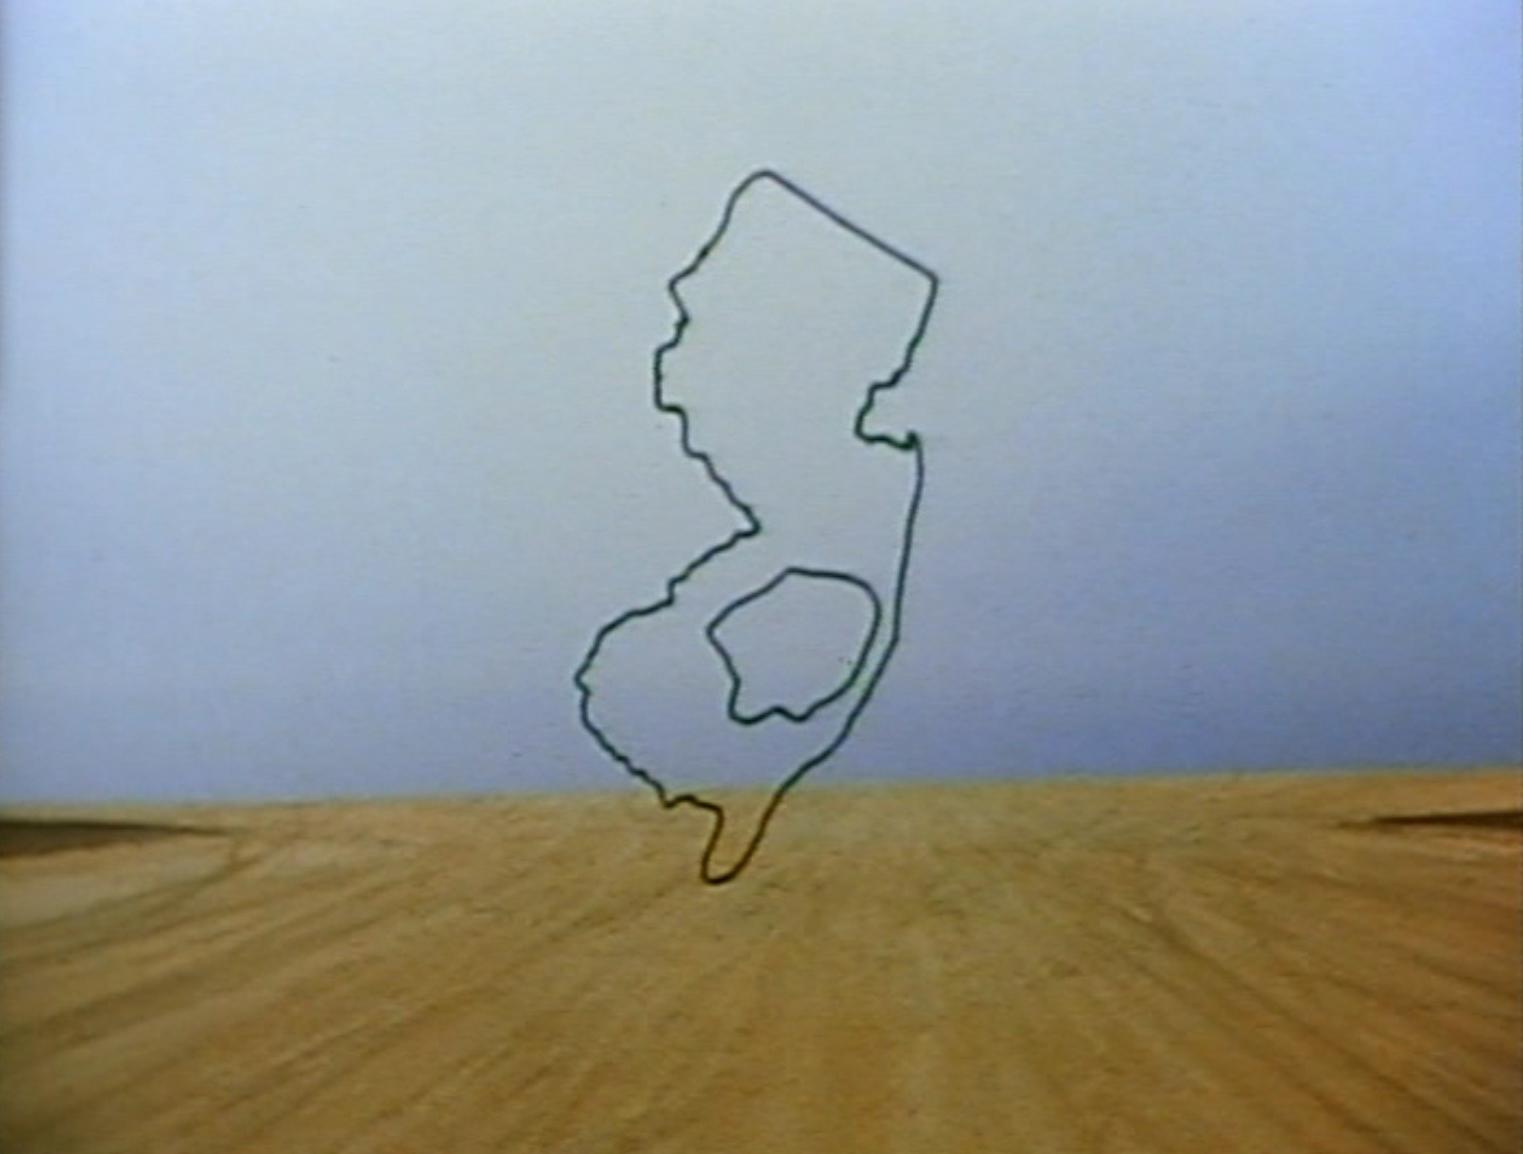 A still from the film Pine Barrens showing an outline of the state of New Jersey superimposed over a stark landscape.